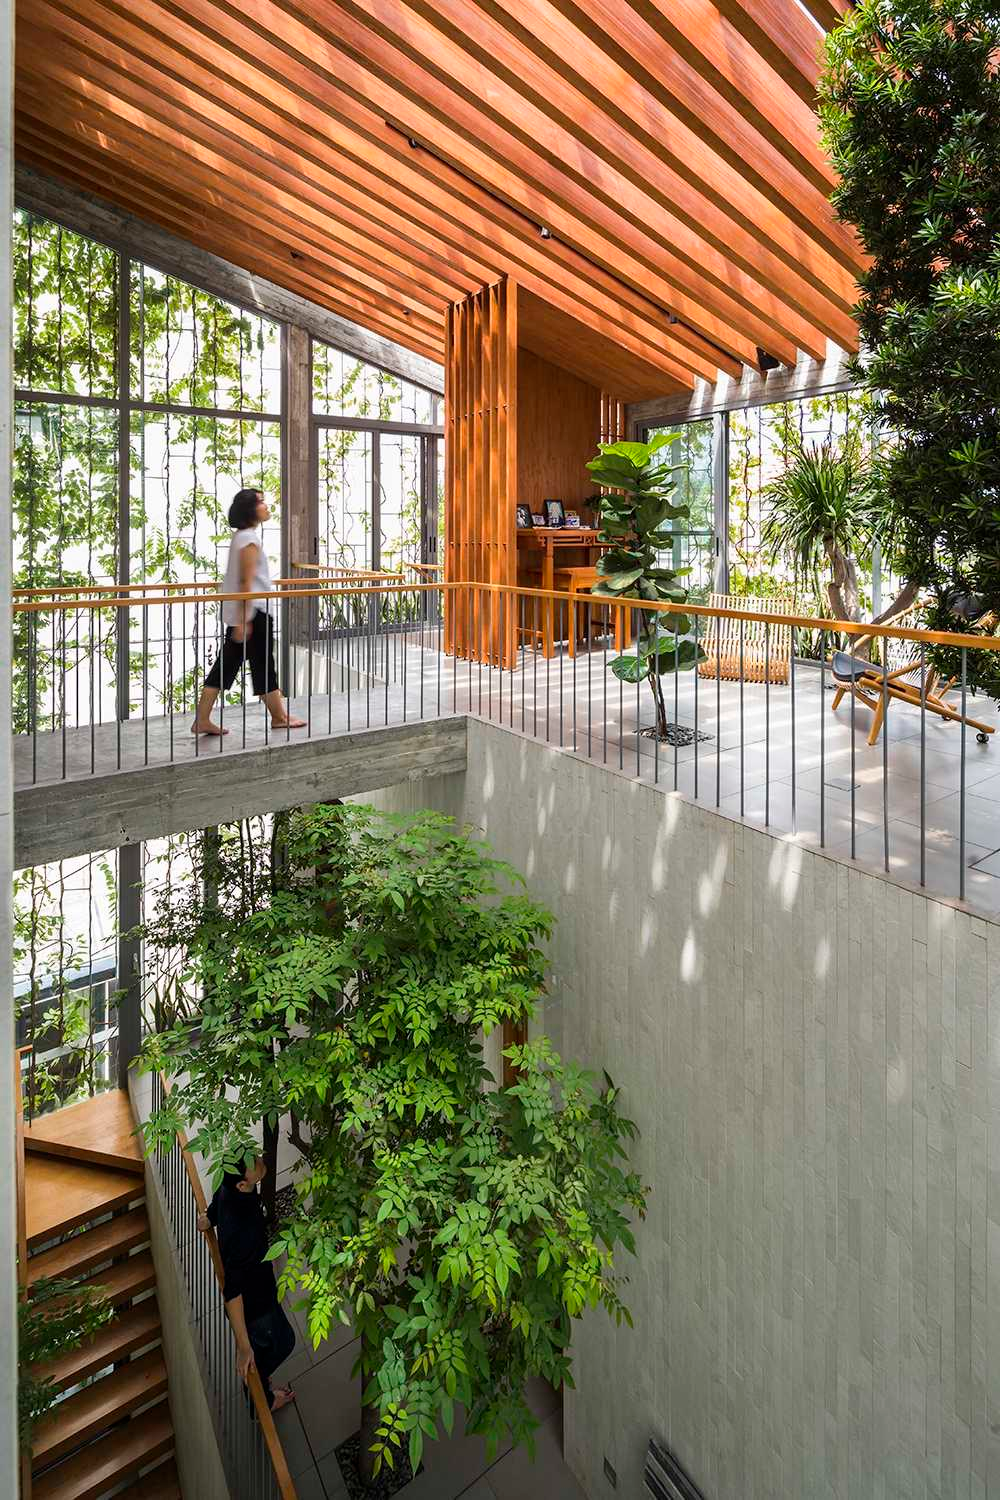 Even corridors in this house are lined with big trees. Photos courtersy of Hiroyuki Oki